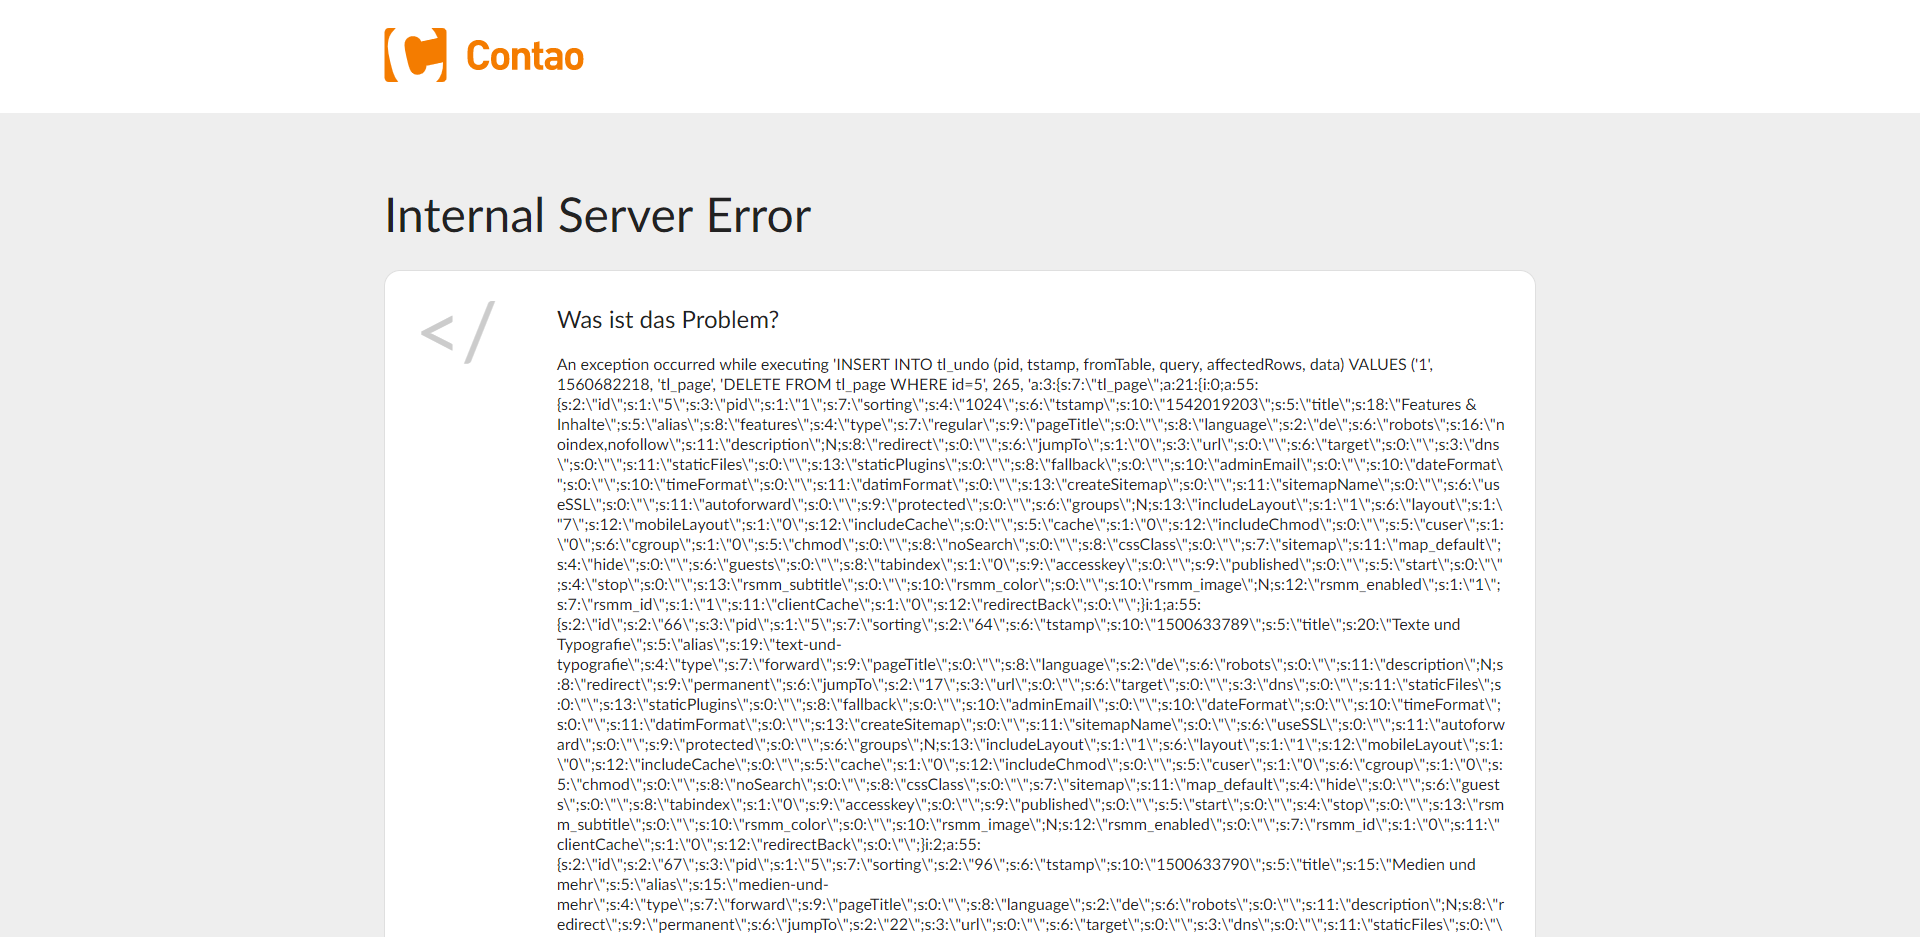 Fireshot_capture_065_-_internal_server_error_-_antiquesgermany.local